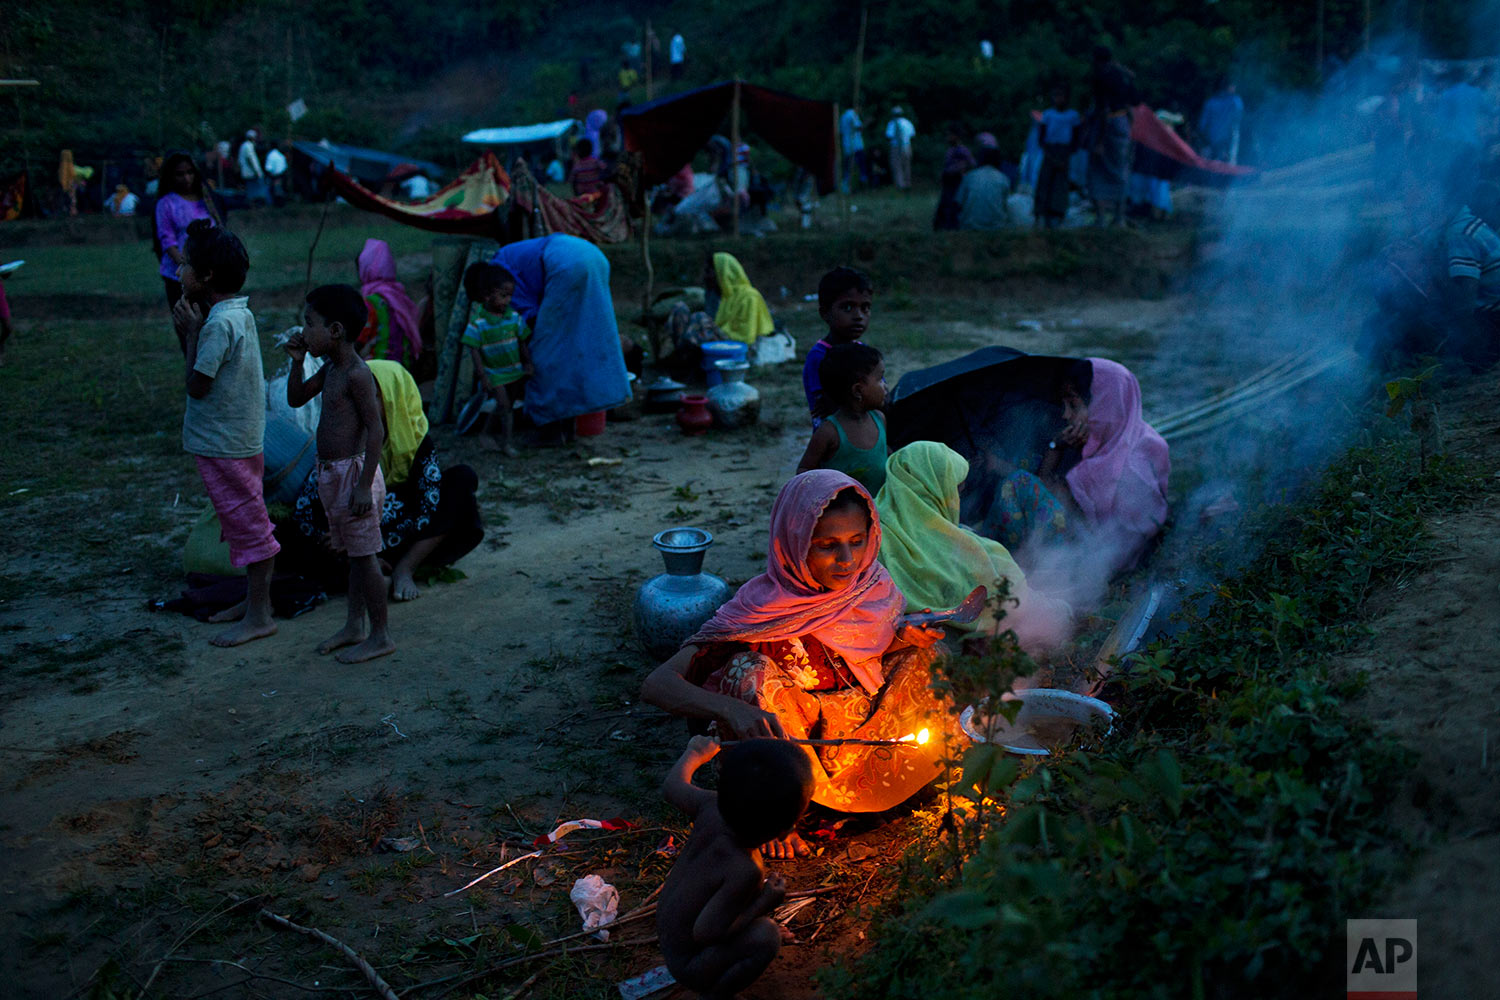 Rohingya ethnic minority, who have just crossed over to Bangladesh from Myanmar, cook a meal near Cox's Bazar's Gundum area, Saturday, Sept. 2, 2017. (AP Photo/Bernat Armangue)